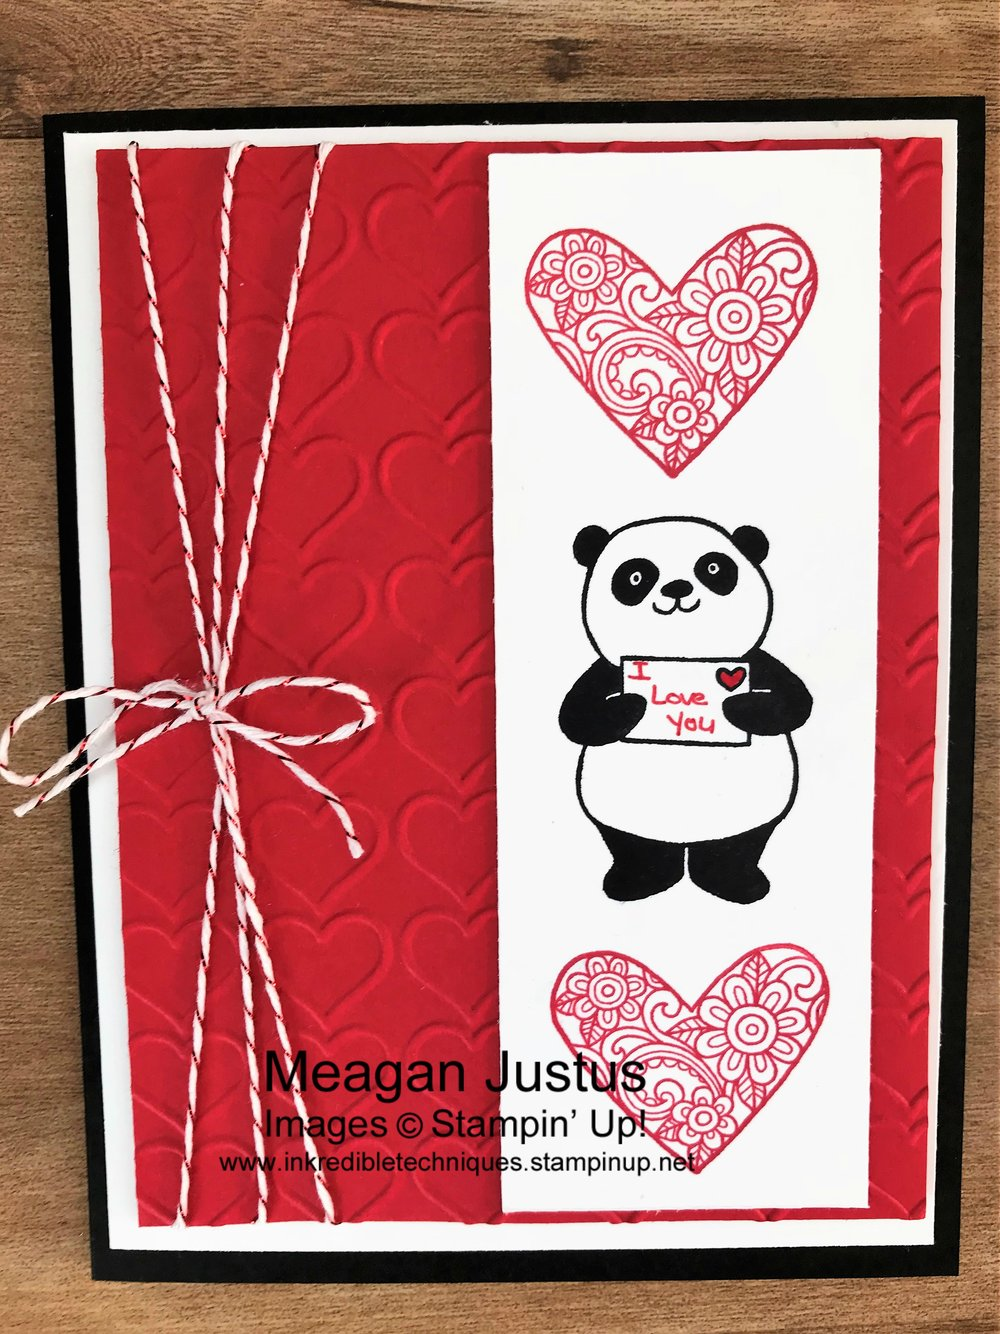 Inkredible Techniques Valentine's Day Card